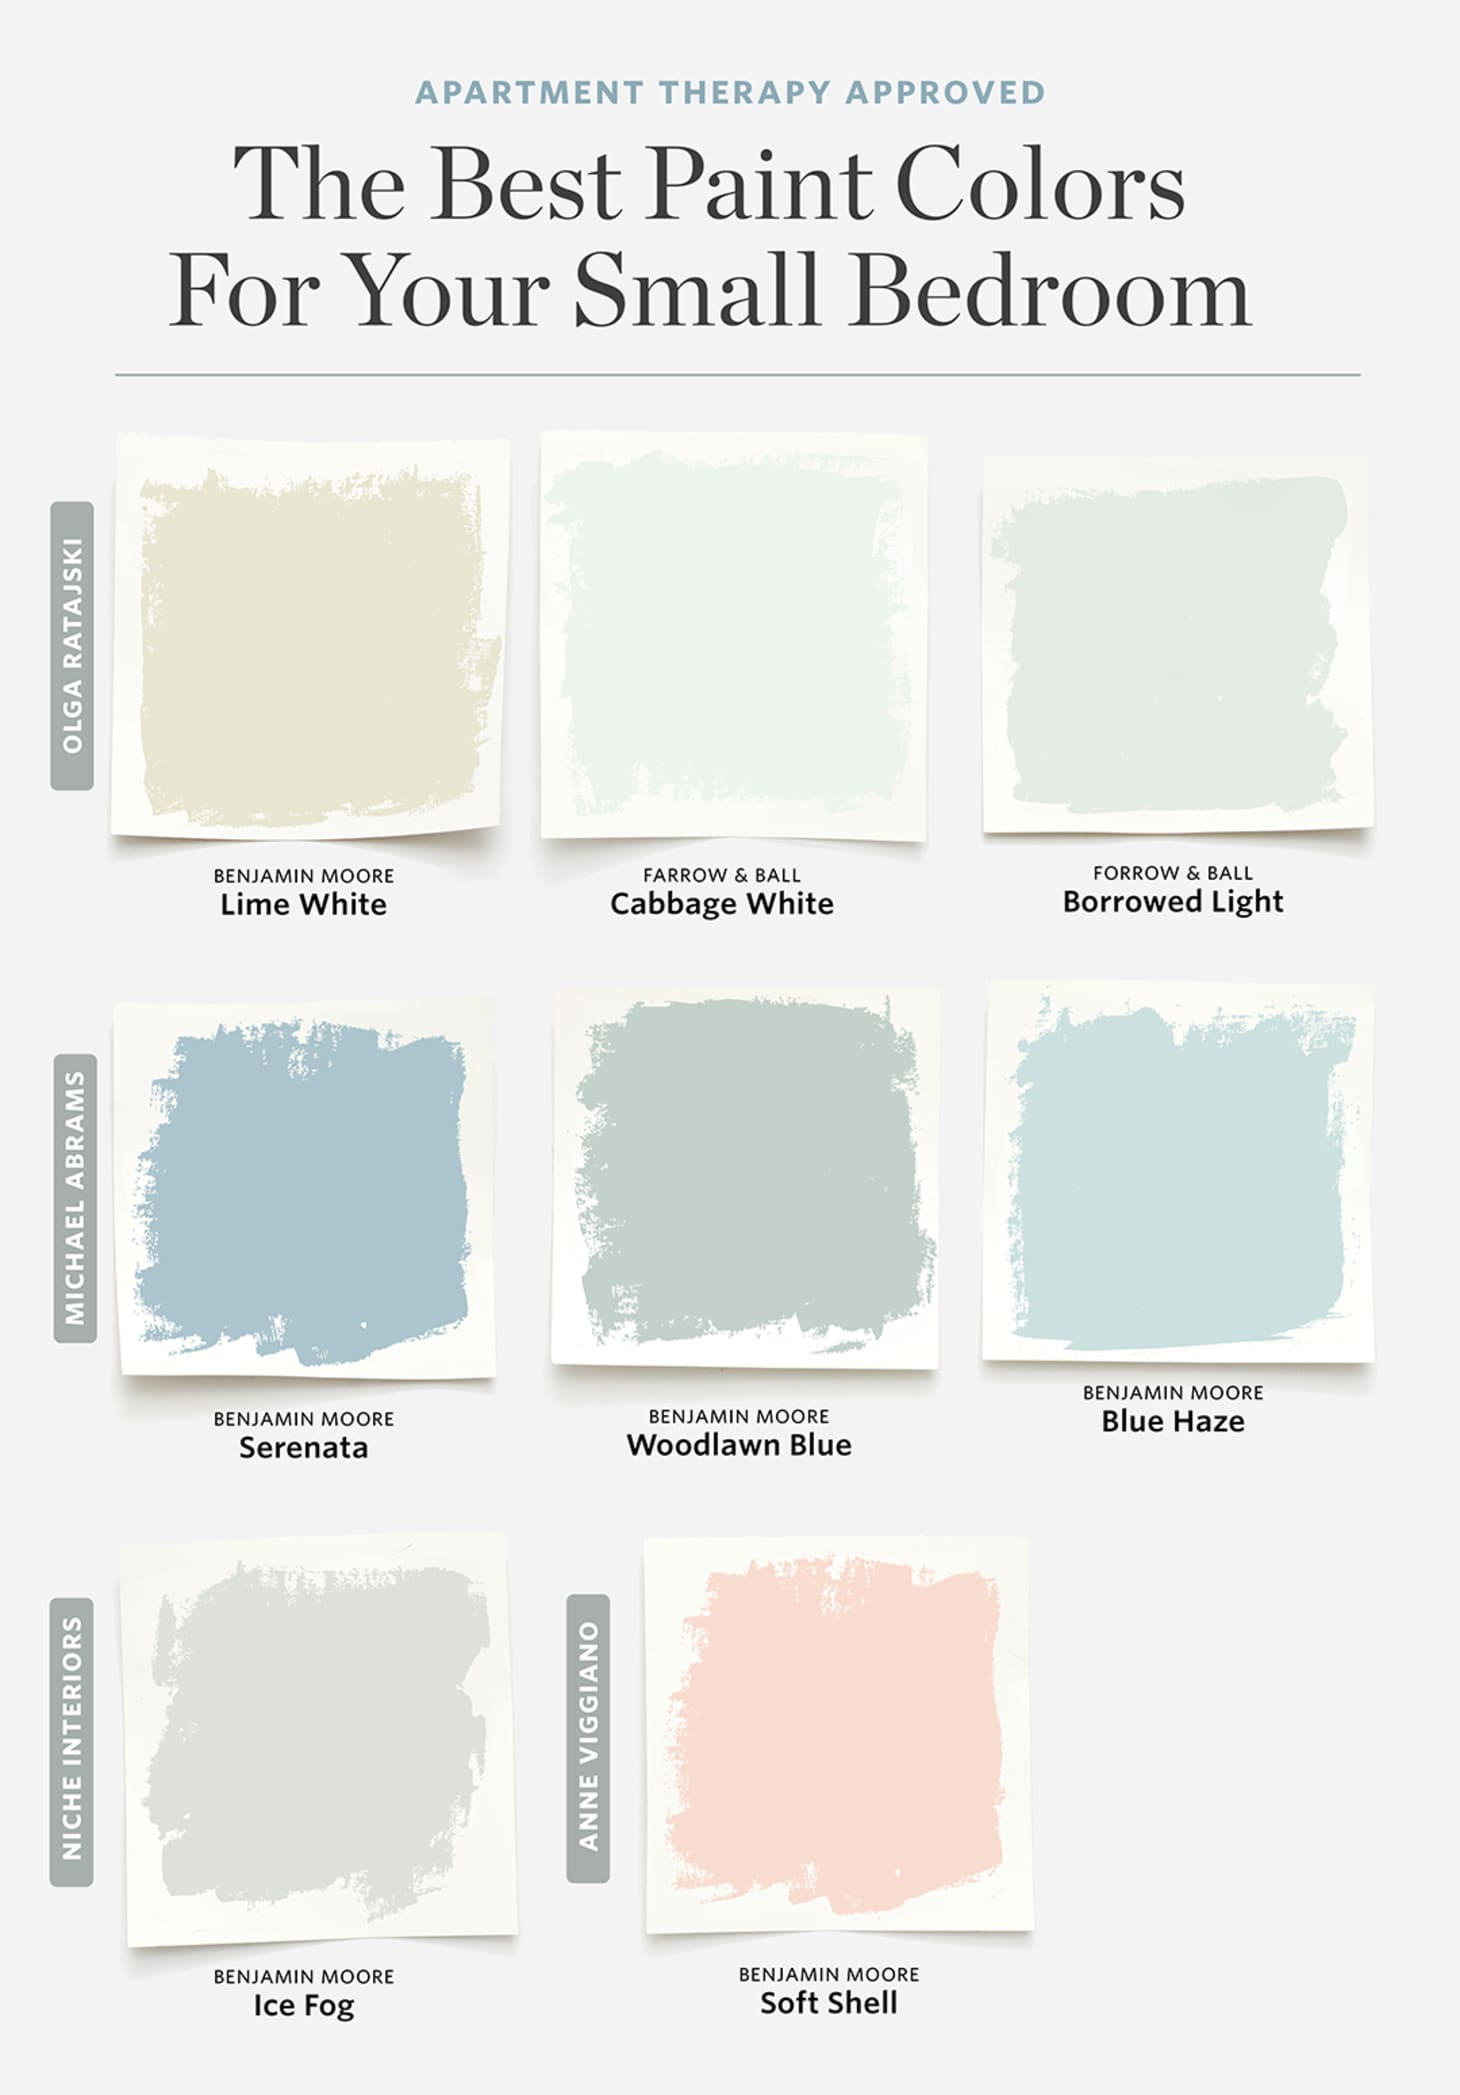 Paint Colors for Small Bedrooms | Apartment Therapy